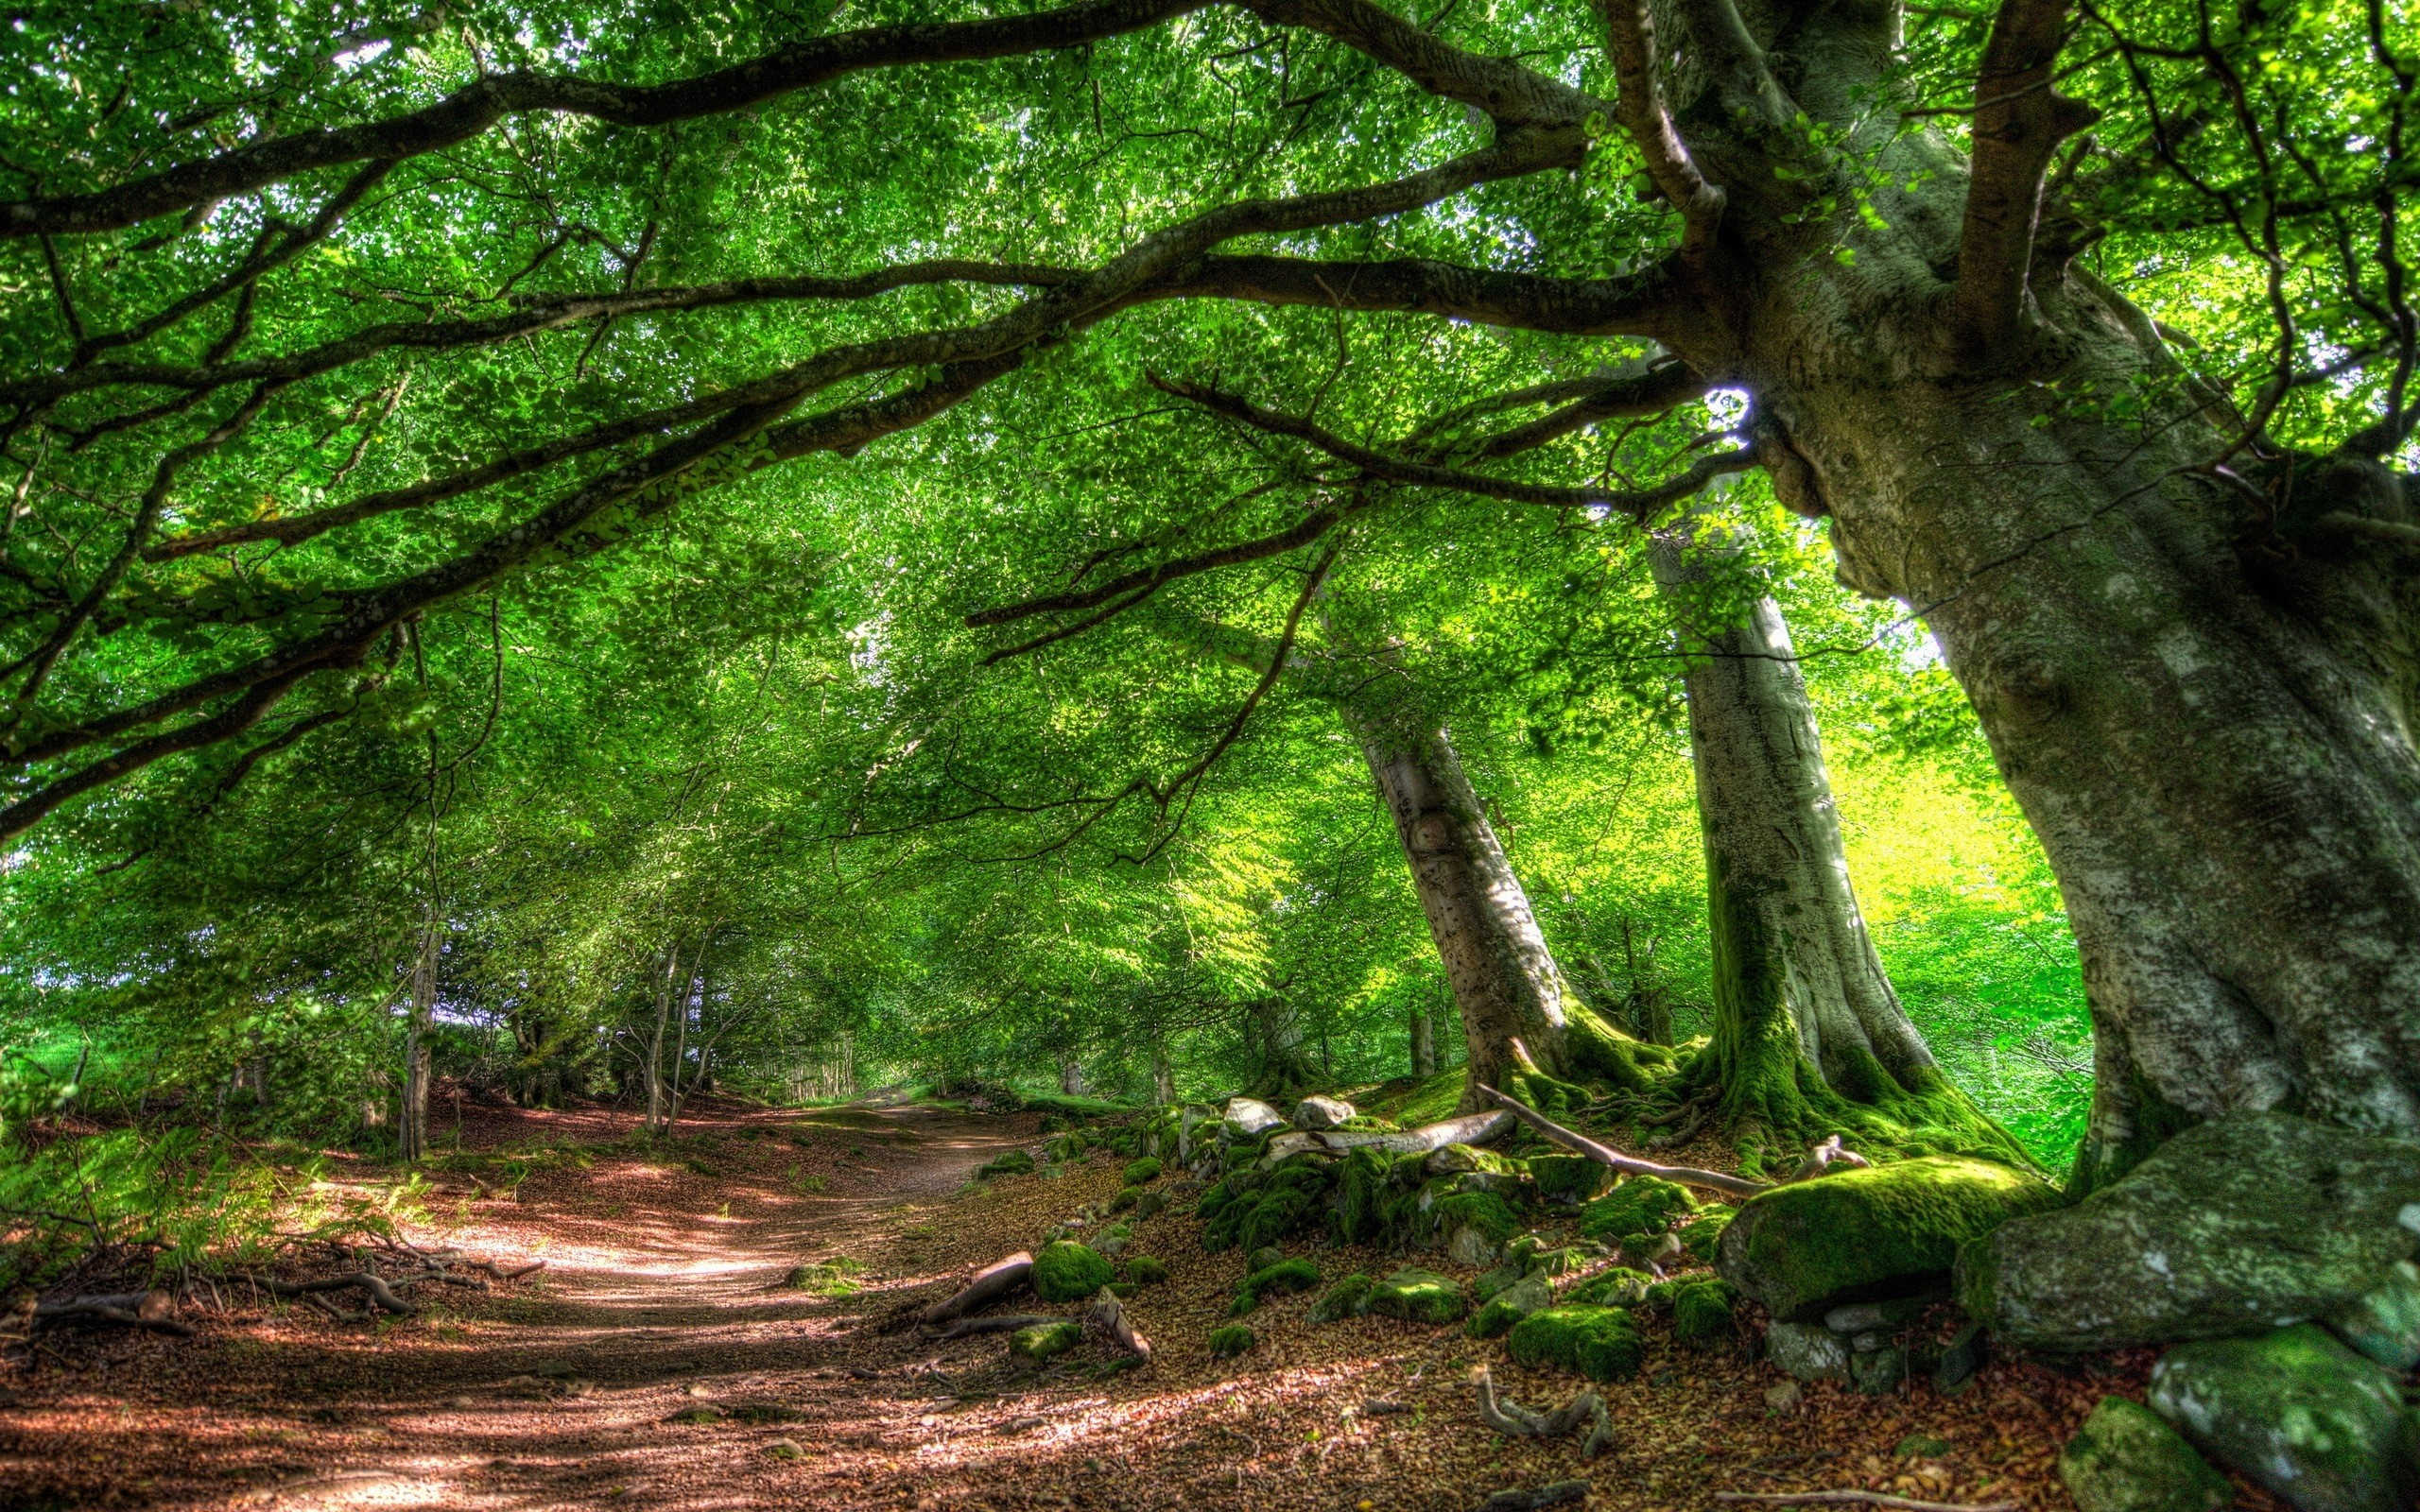 1920x1200 Full Hd 1080p Forest Wallpapers Desktop Backgrounds 1920x1080